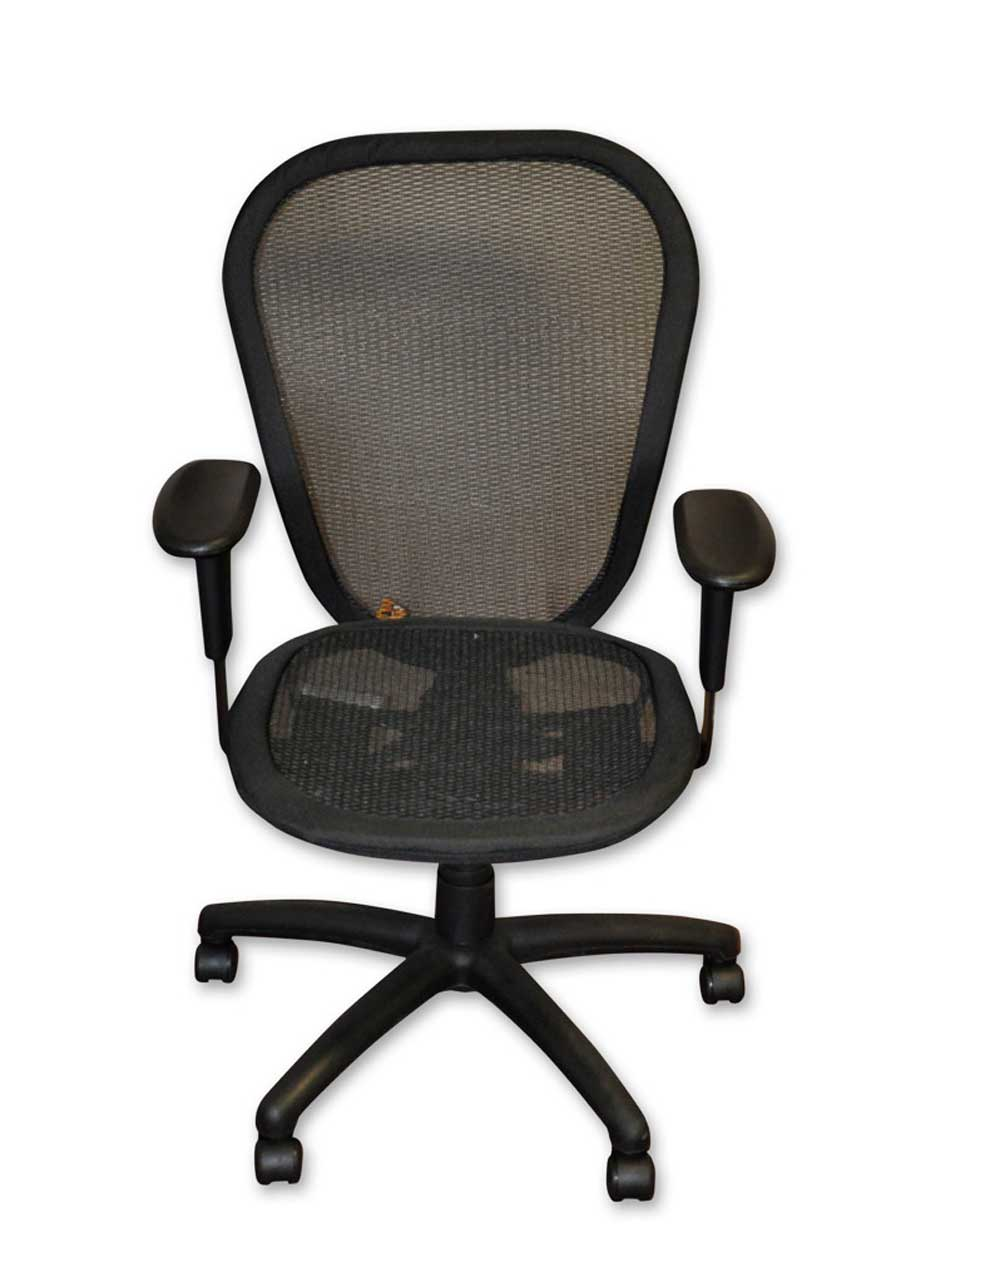 Ergonomic Mesh Chairs For Home Office